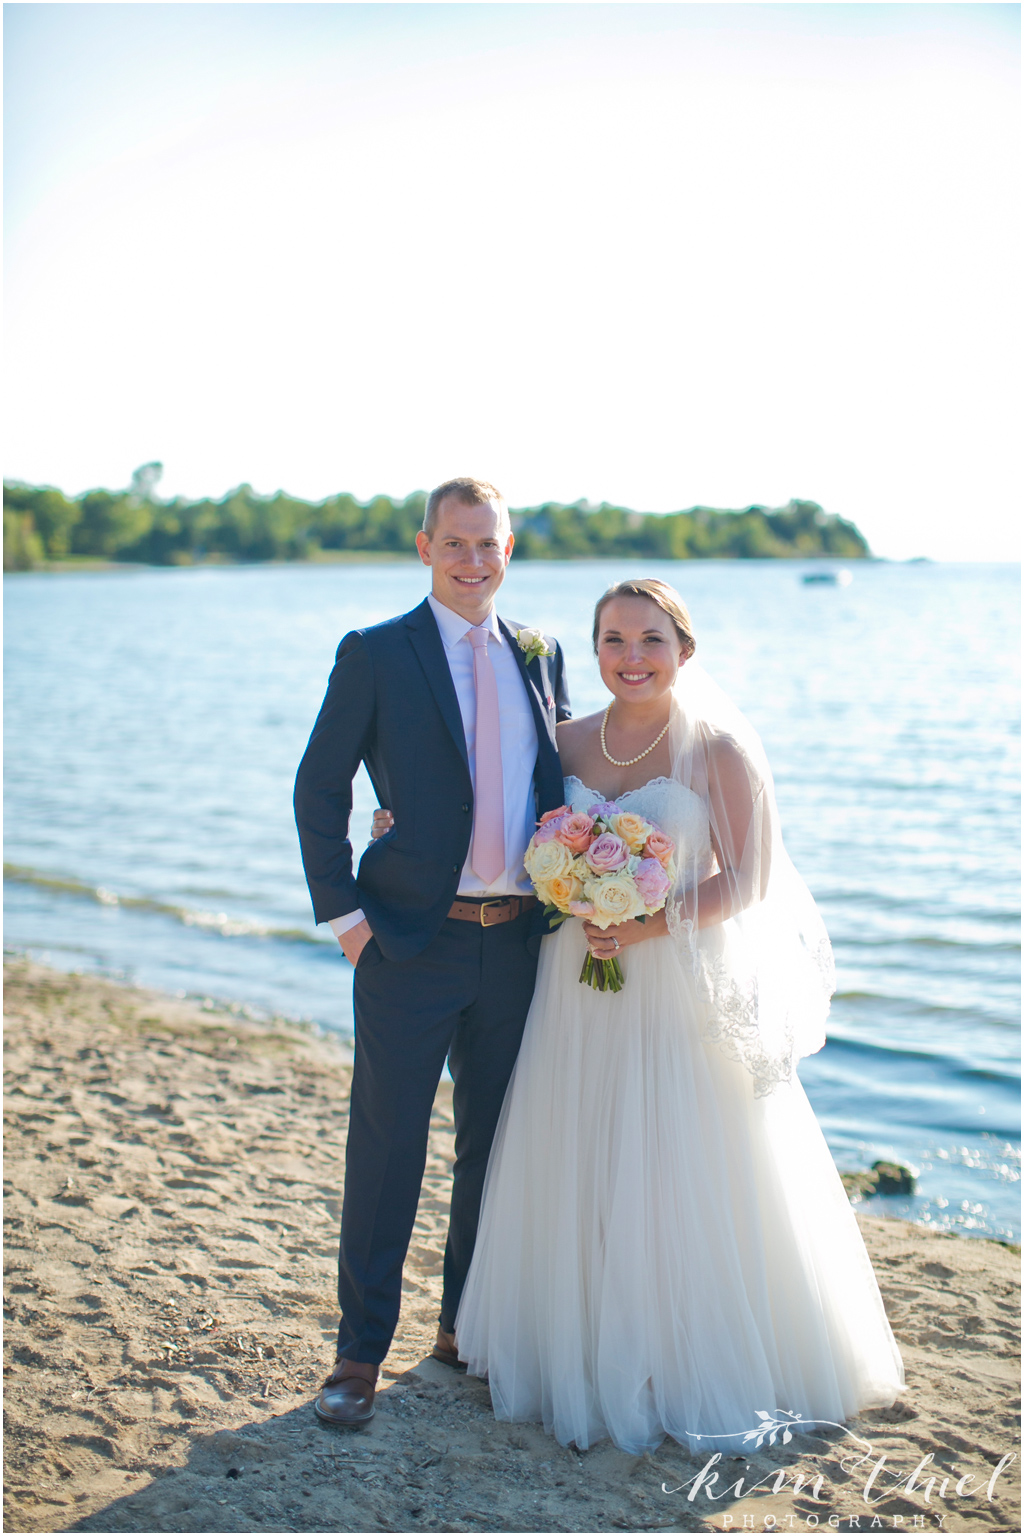 Kim-Thiel-Photography-Horseshoe-Bay-Wedding-1